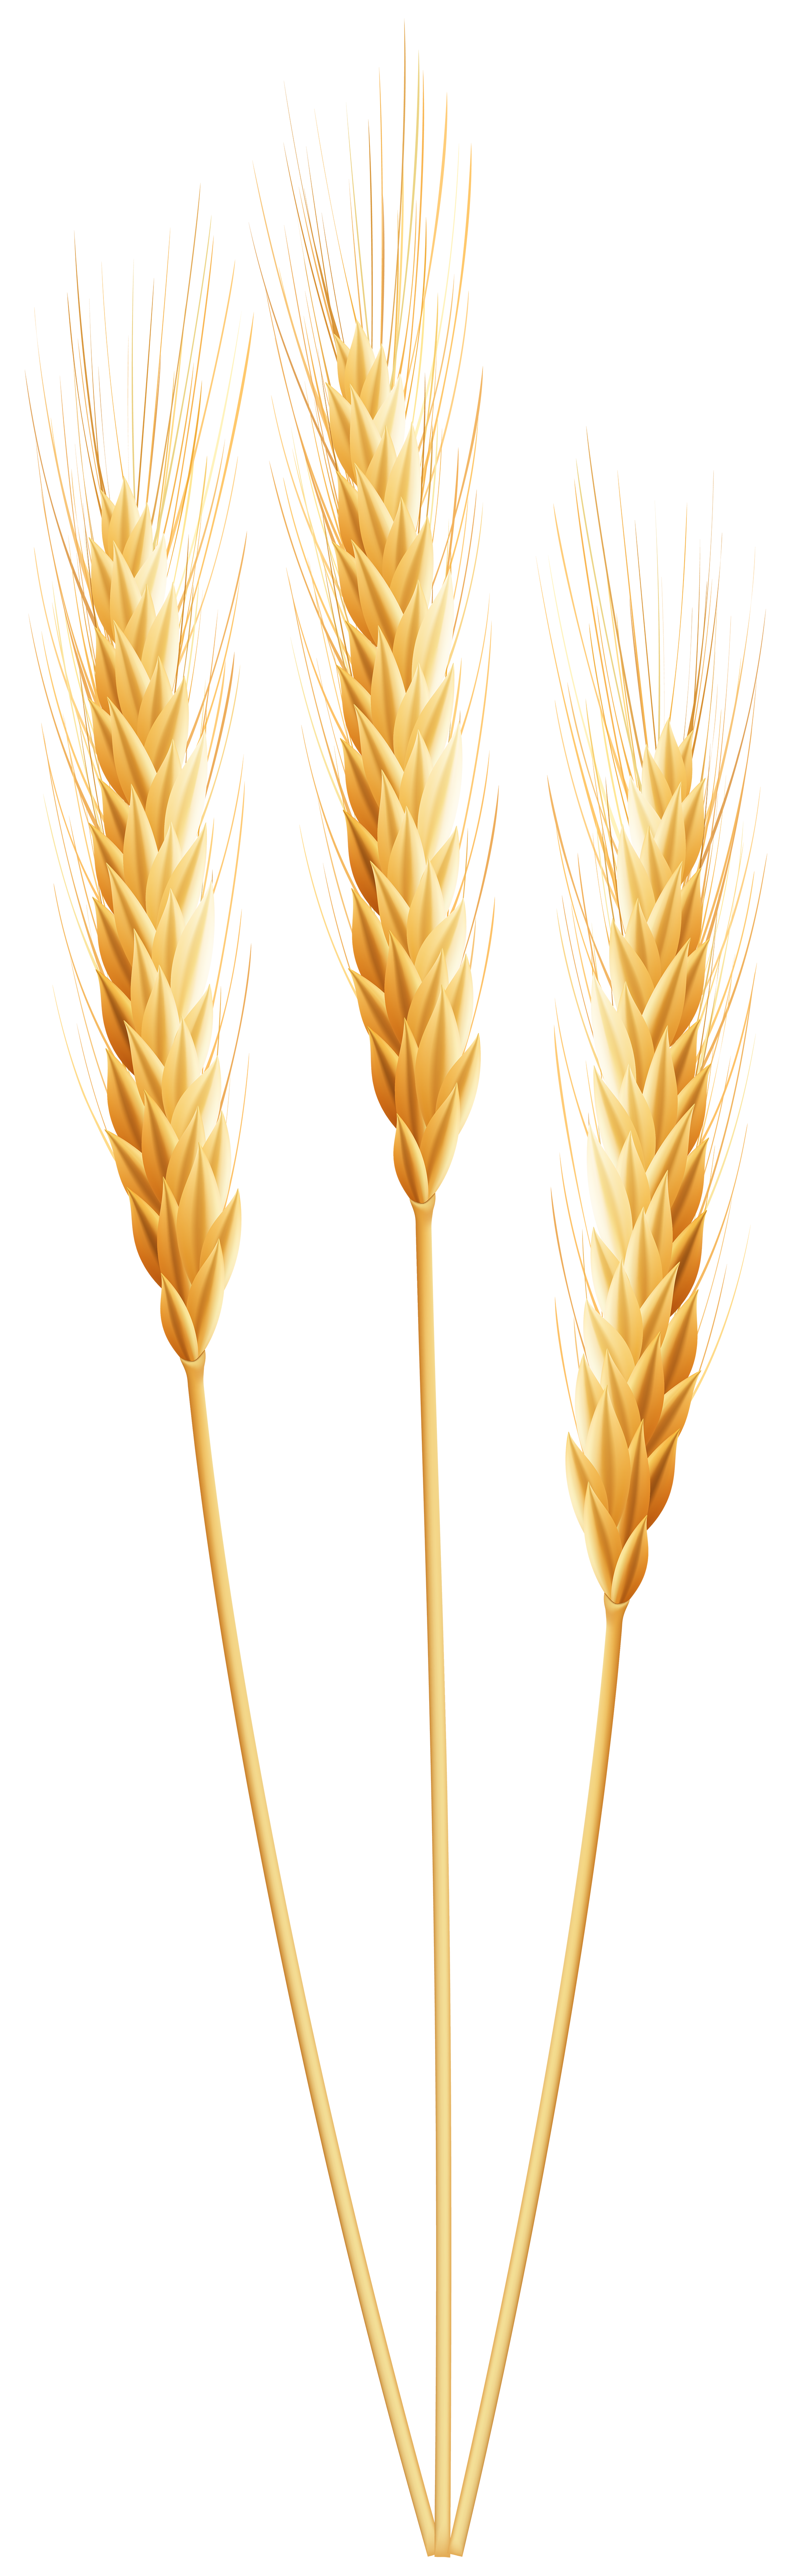 Thanksgiving wheat clipart graphic freeuse stock Wheat PNG Clip Art Image | ClipArt | Pinterest | Art images, Clip ... graphic freeuse stock